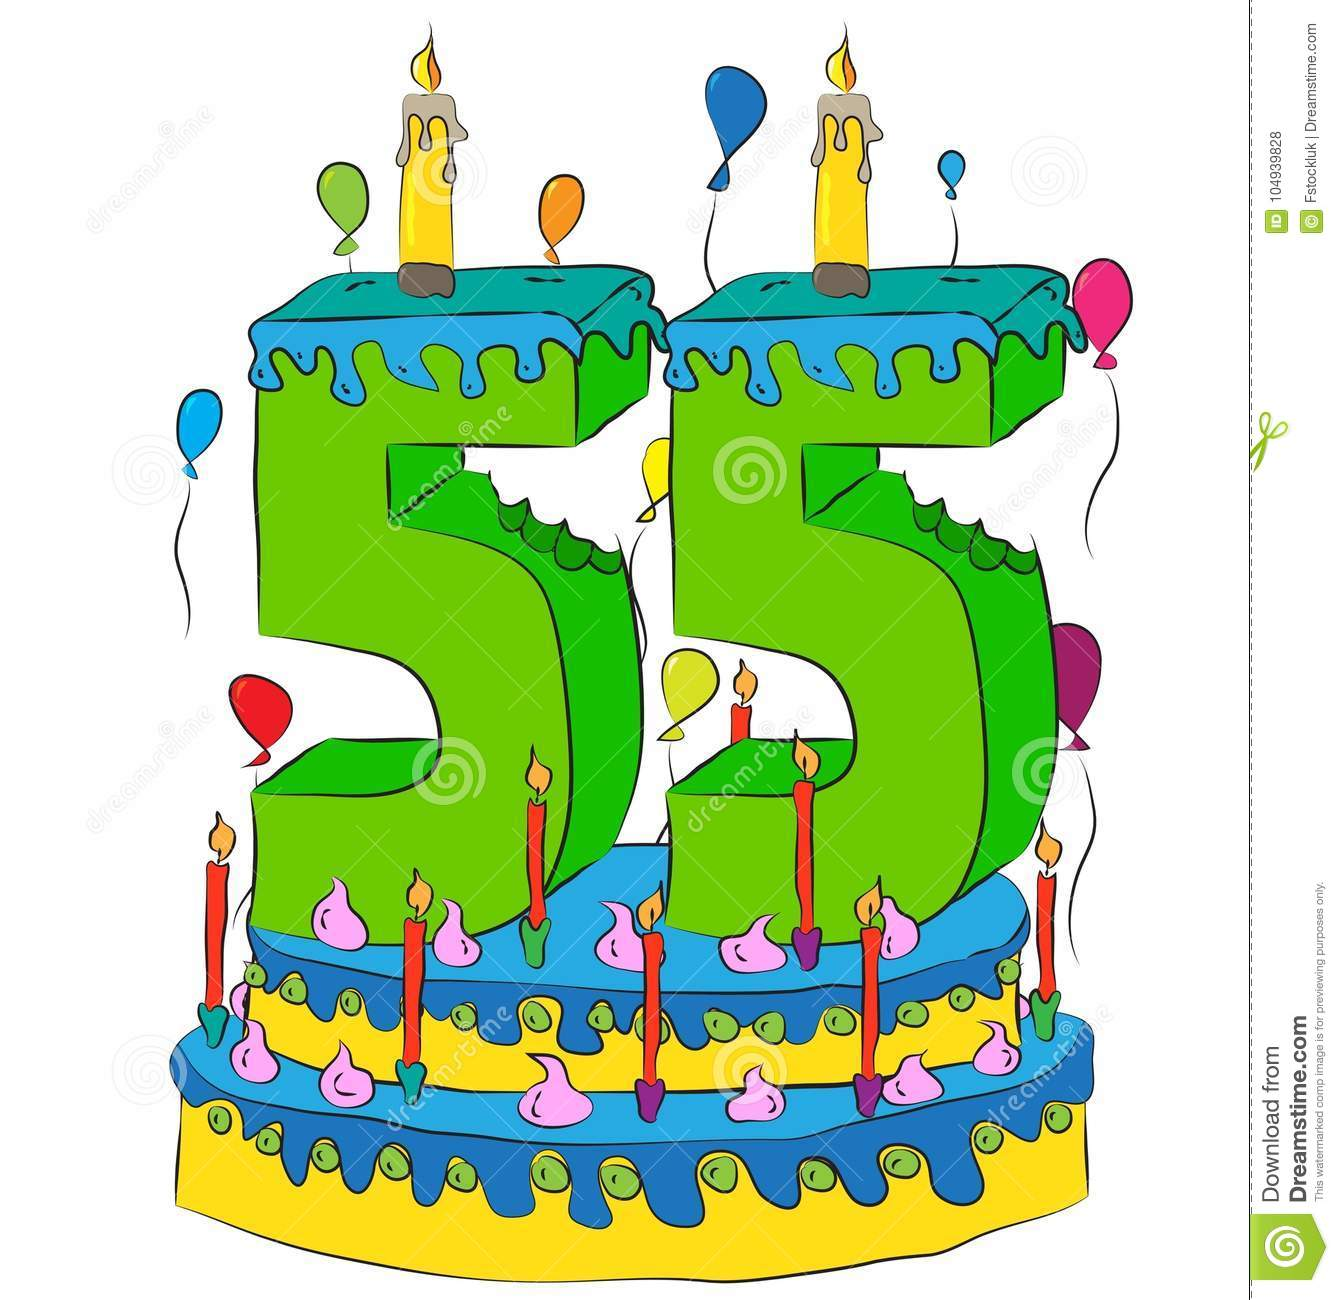 55 Birthday Cake With Number Fifty Five Candle Celebrating Fifth Year Of Life Colorful Balloons And Chocolate Frosting